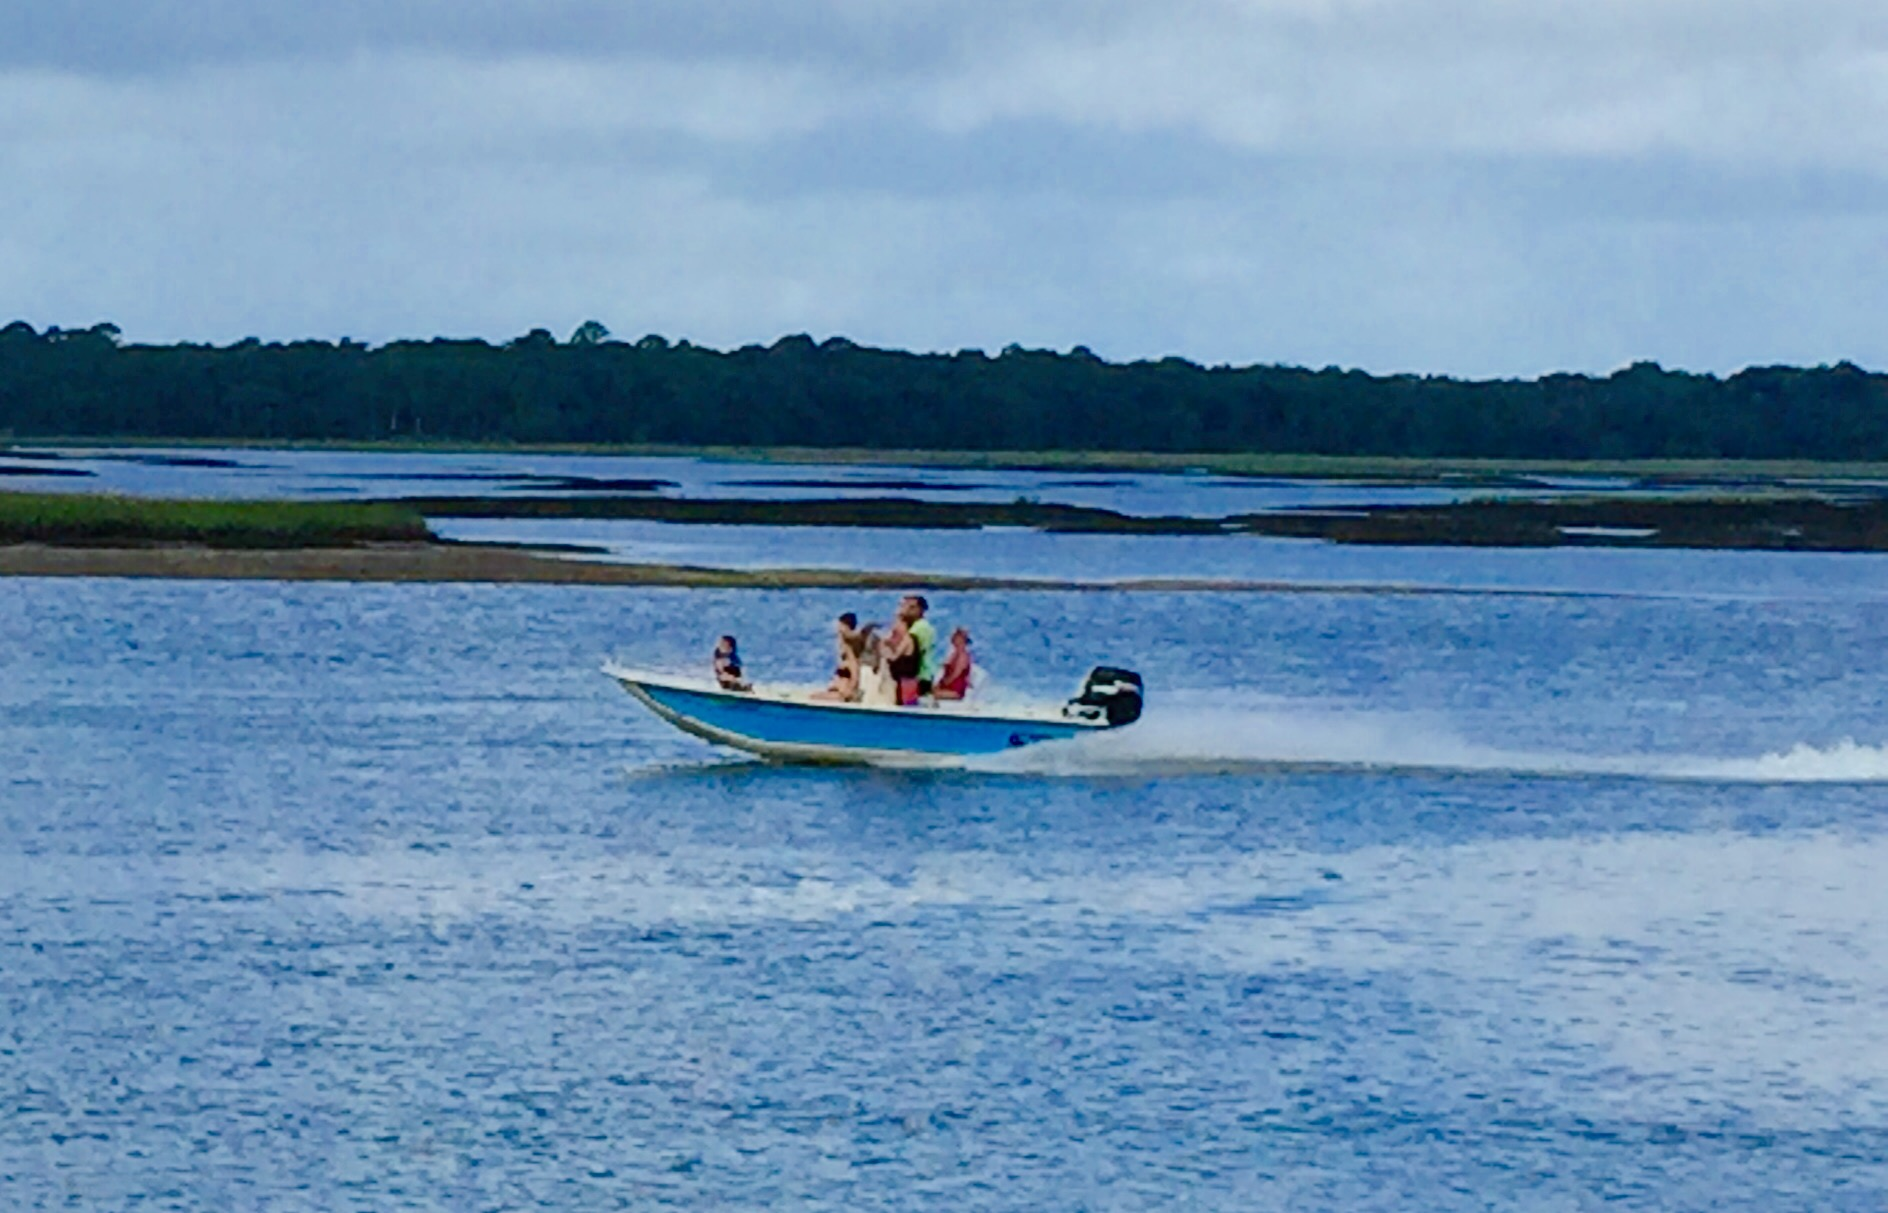 BOATING AT Crescent Beach, Florida